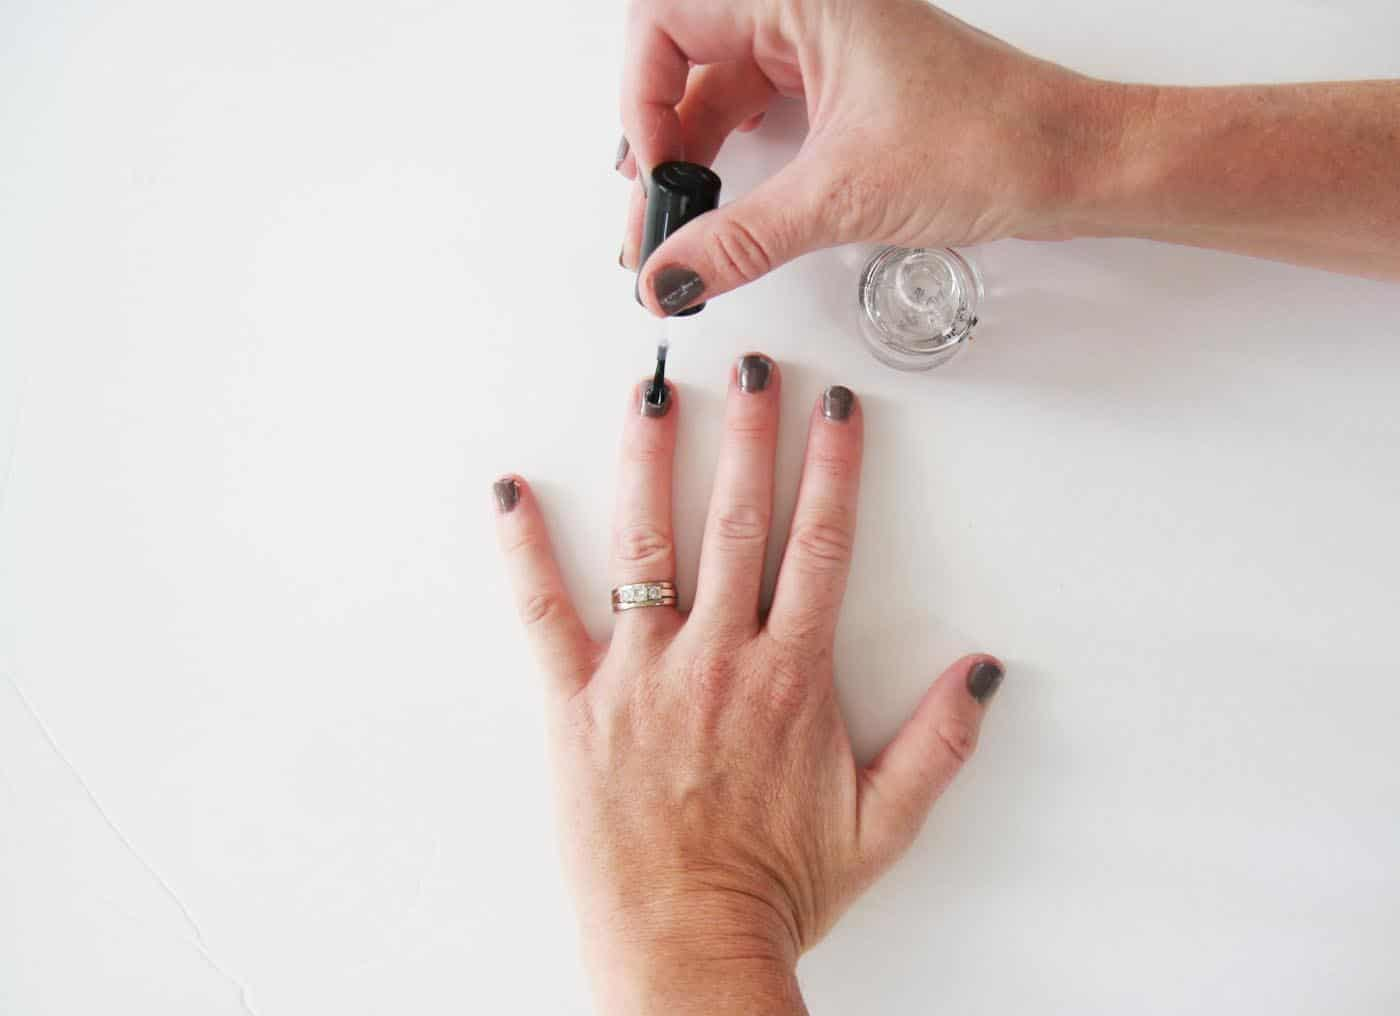 Transform any nail polish to glow at night with this easy DIY glow in the dark nail polish tutorial.